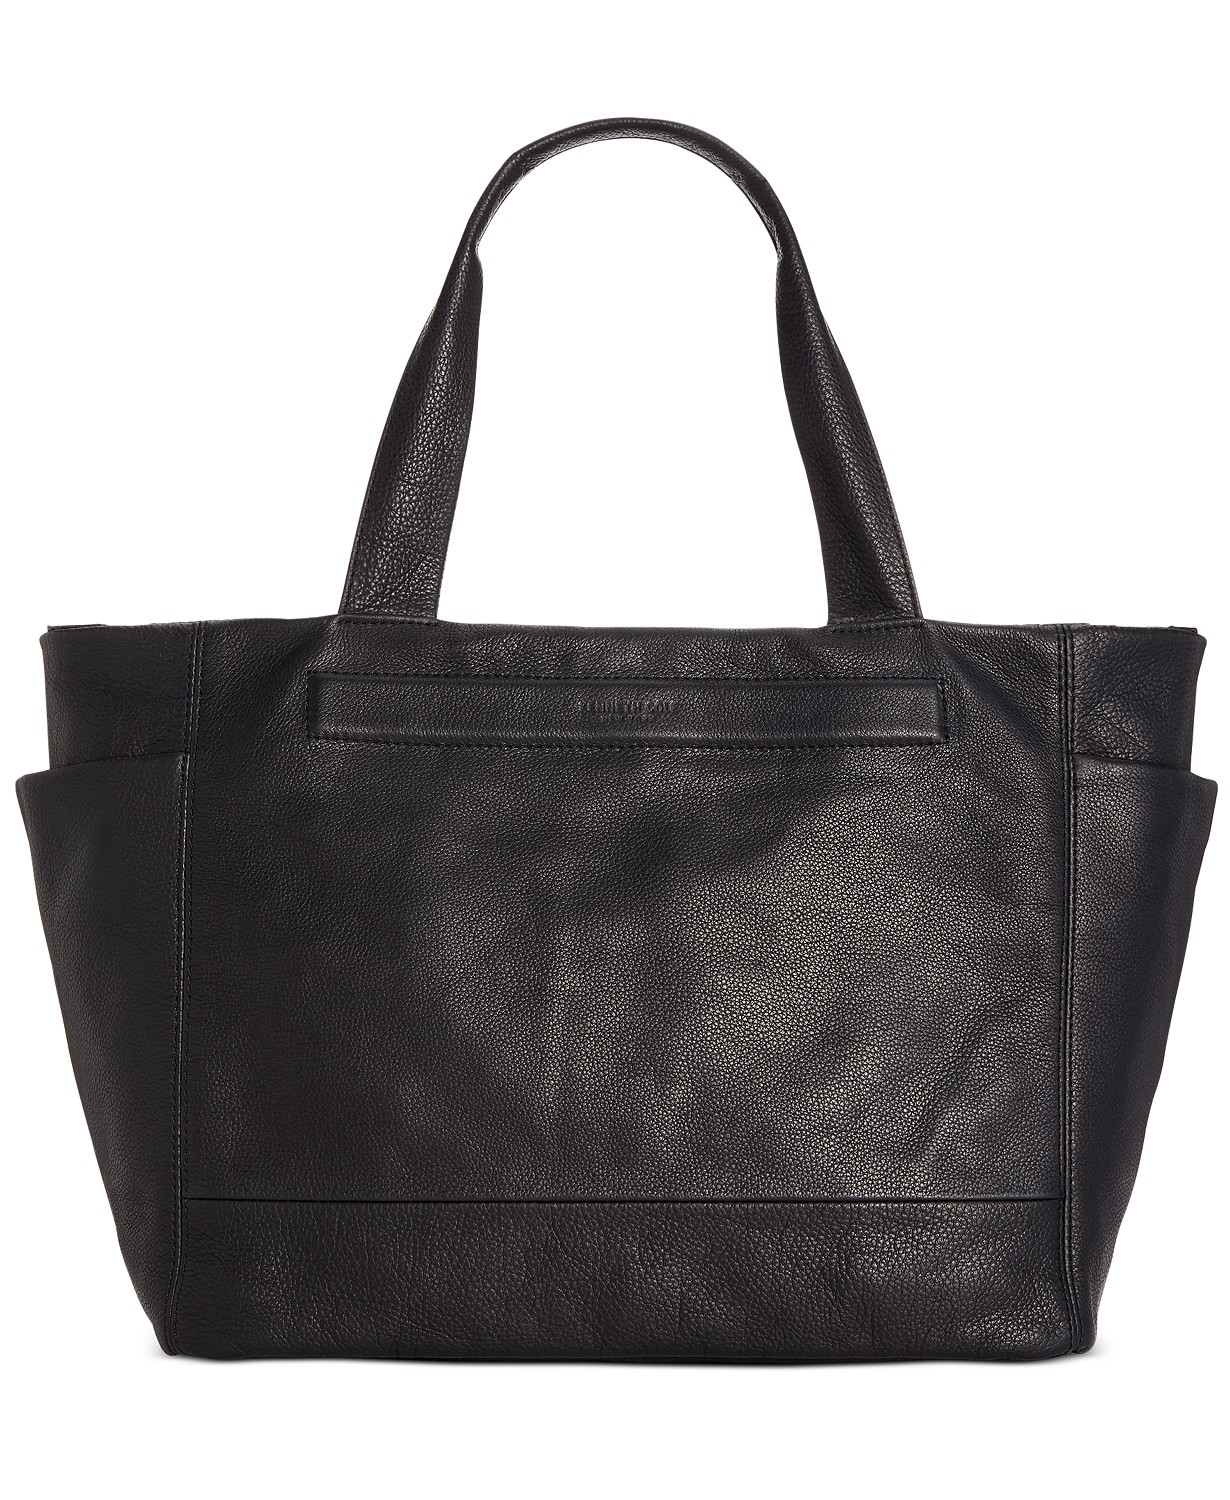 Macys deals on Kenneth Cole New York Stanton Leather Reversible Tote